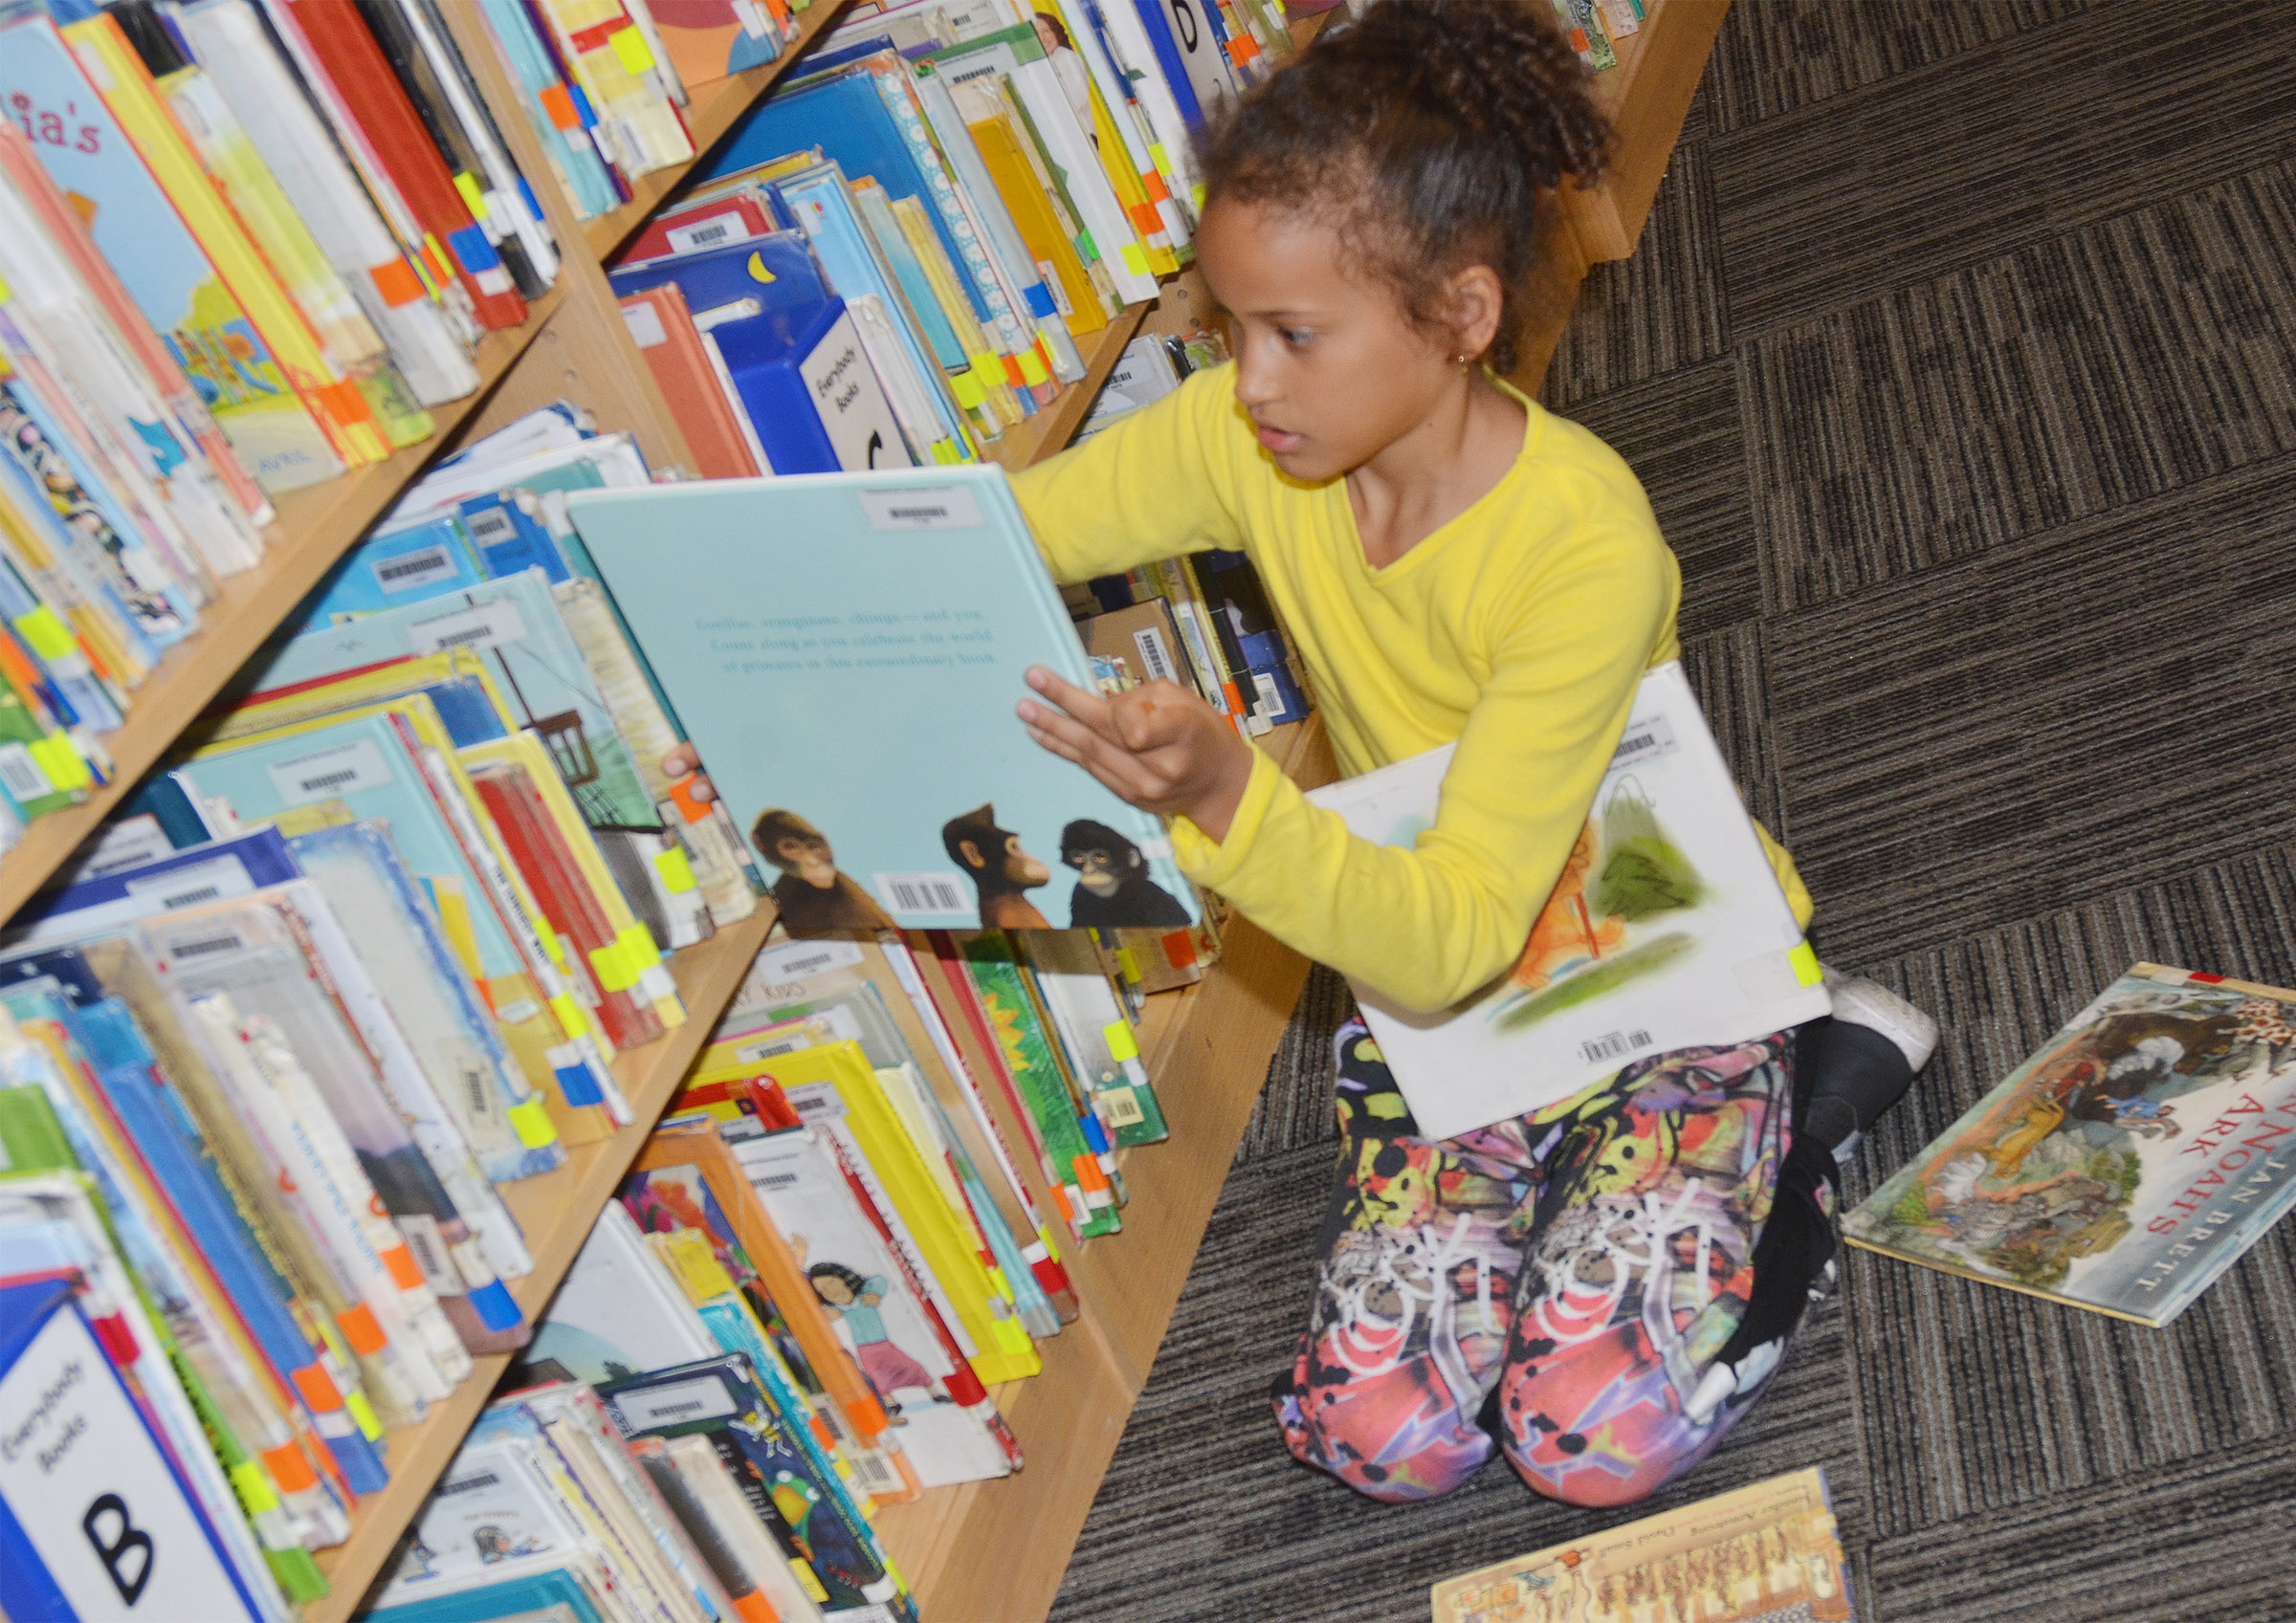 CES second-grader Yazlyn Sutton looks for a book to check out.